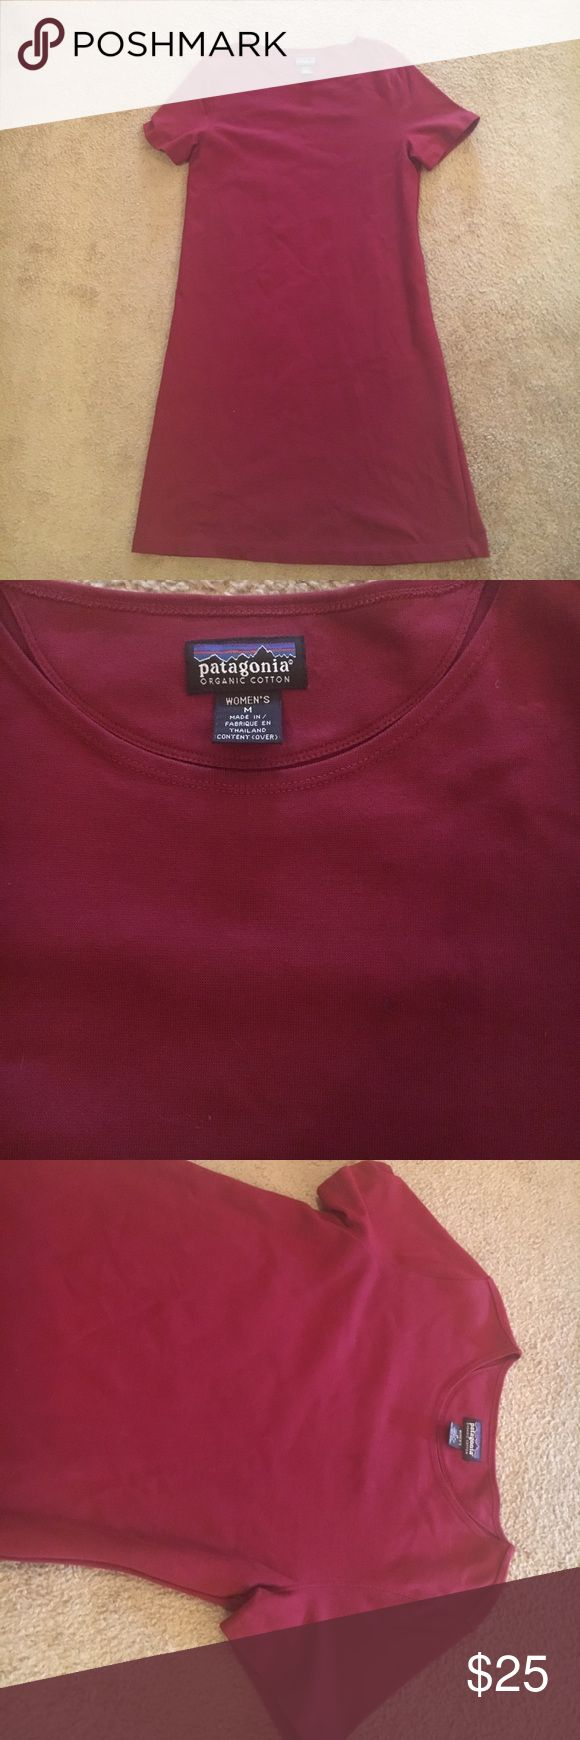 Patagonia dress Patagonia women's dress. Size medium. Excellent condition. Inseam is 38 inches from shoulder to thigh. Color is deep red. Material is 95% cotton 5% spandex. Patagonia Dresses Mini